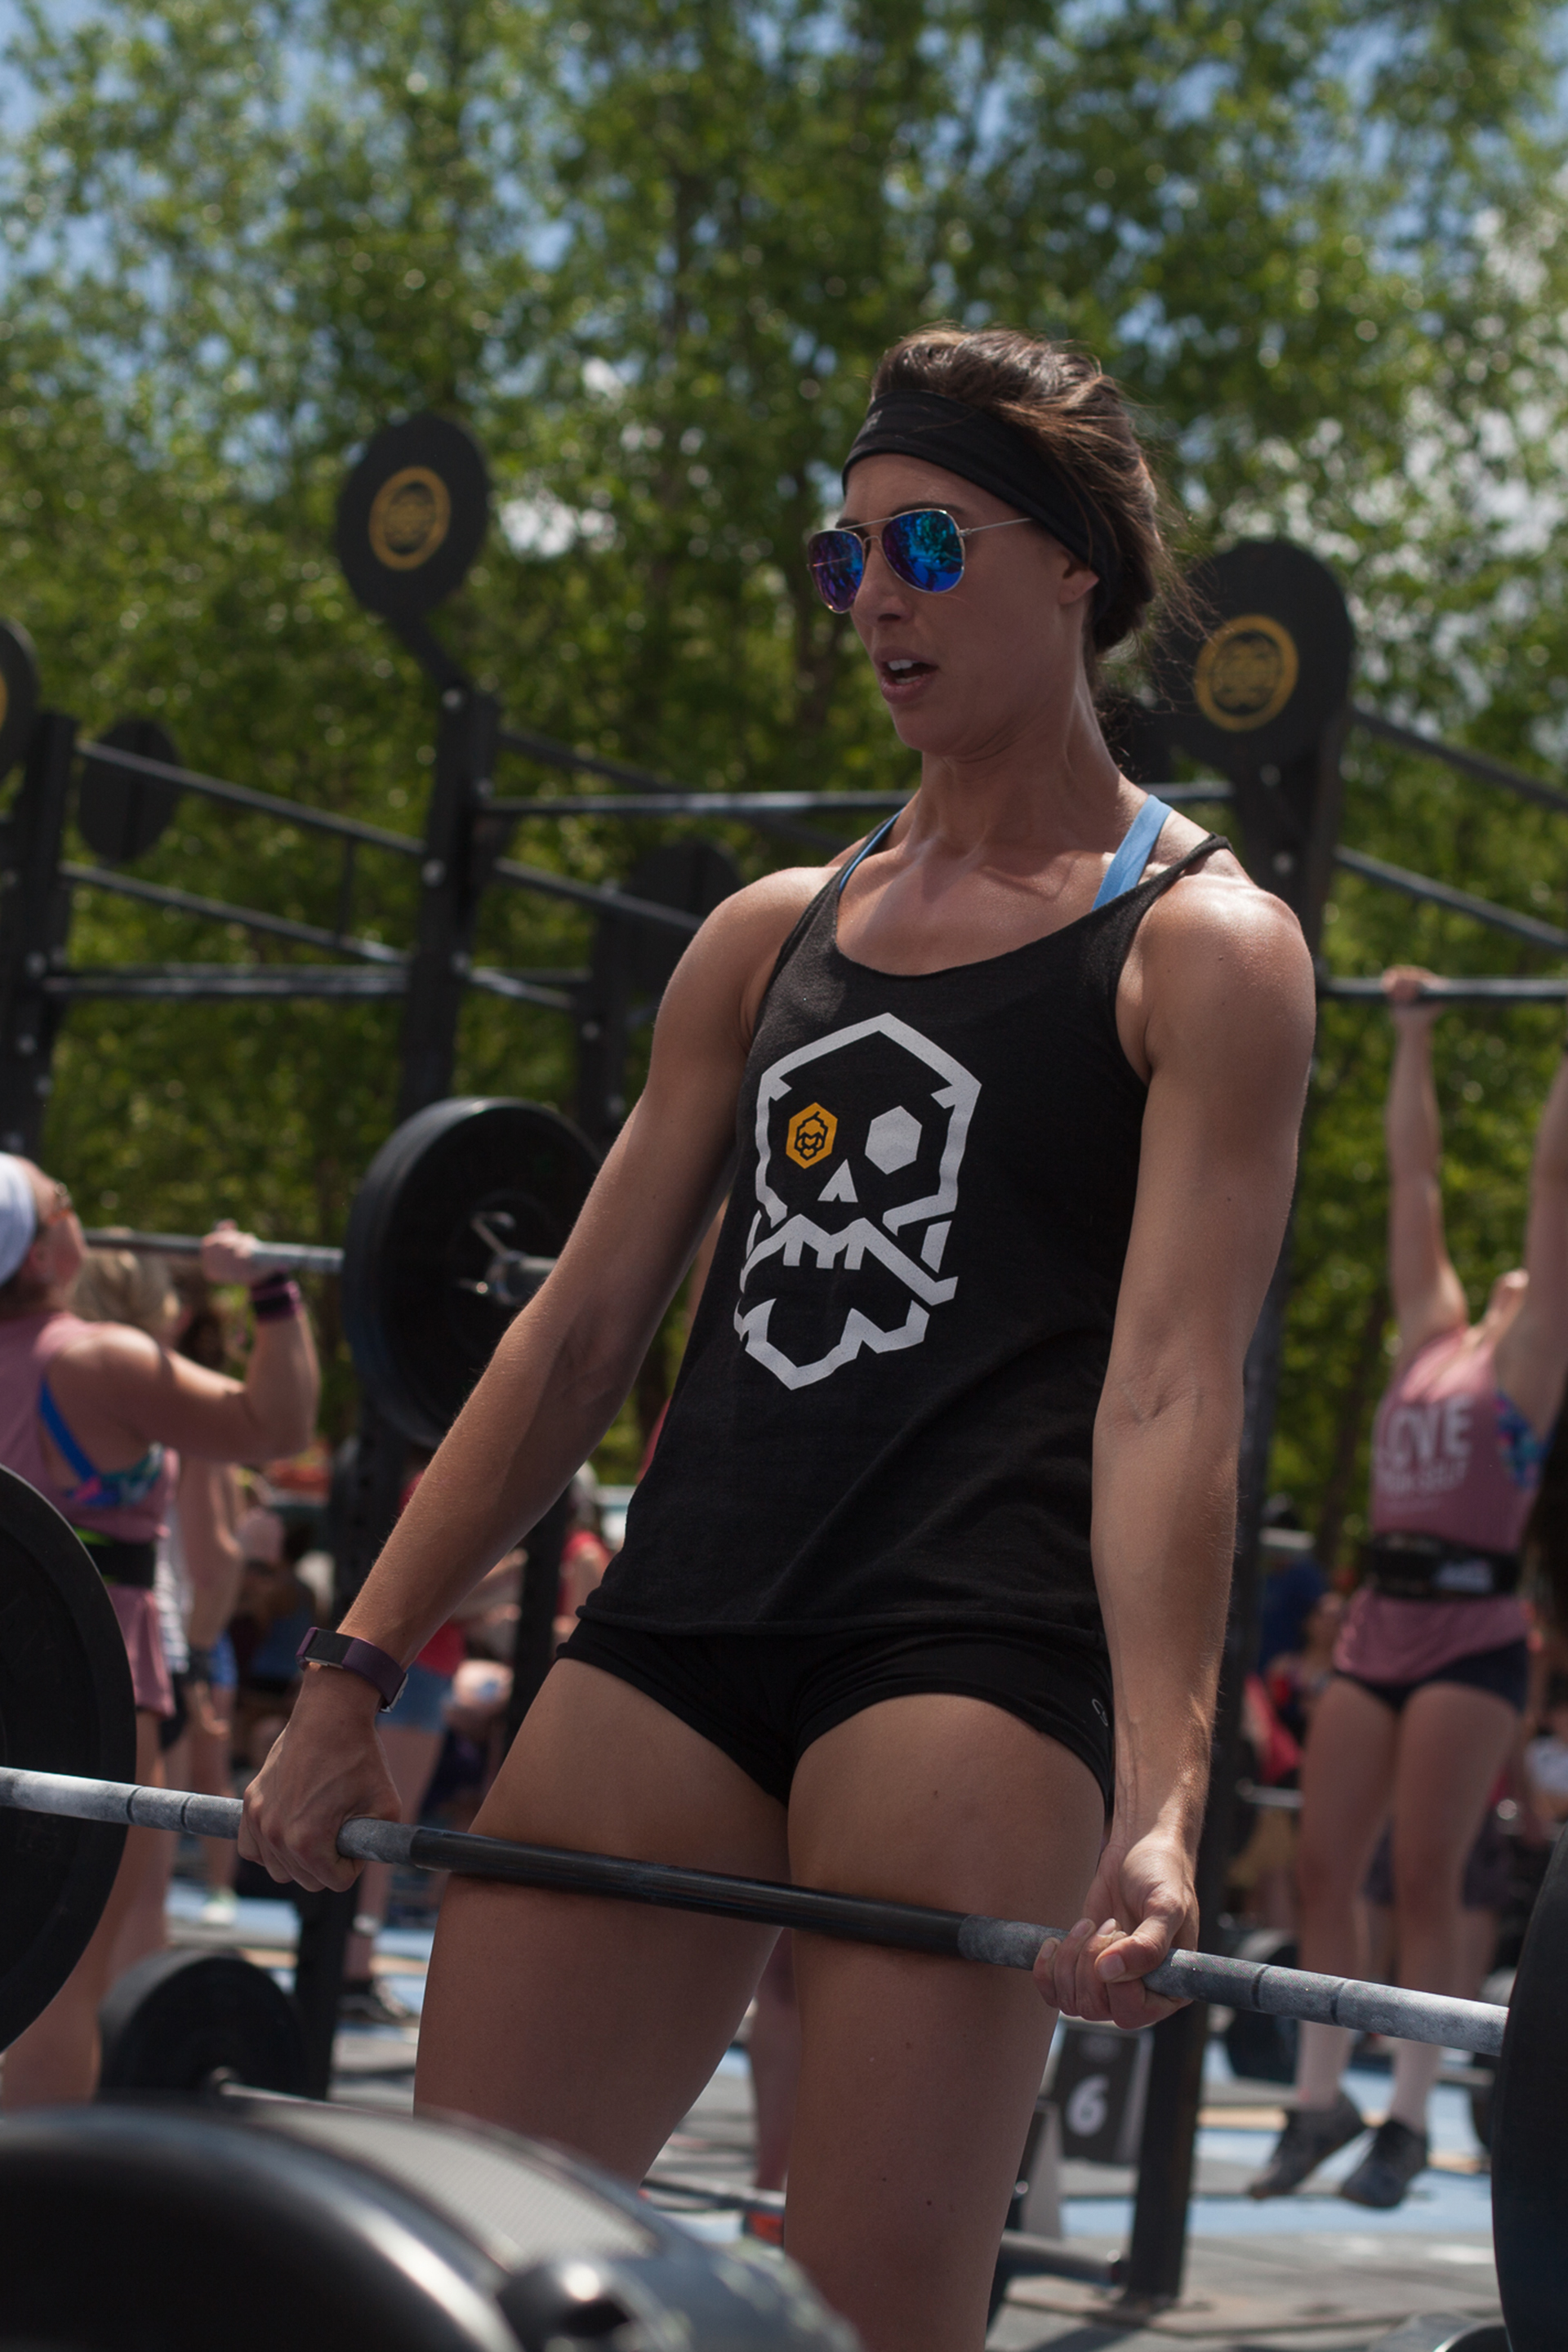 deadlift - women who compete - gorgeous and athletic